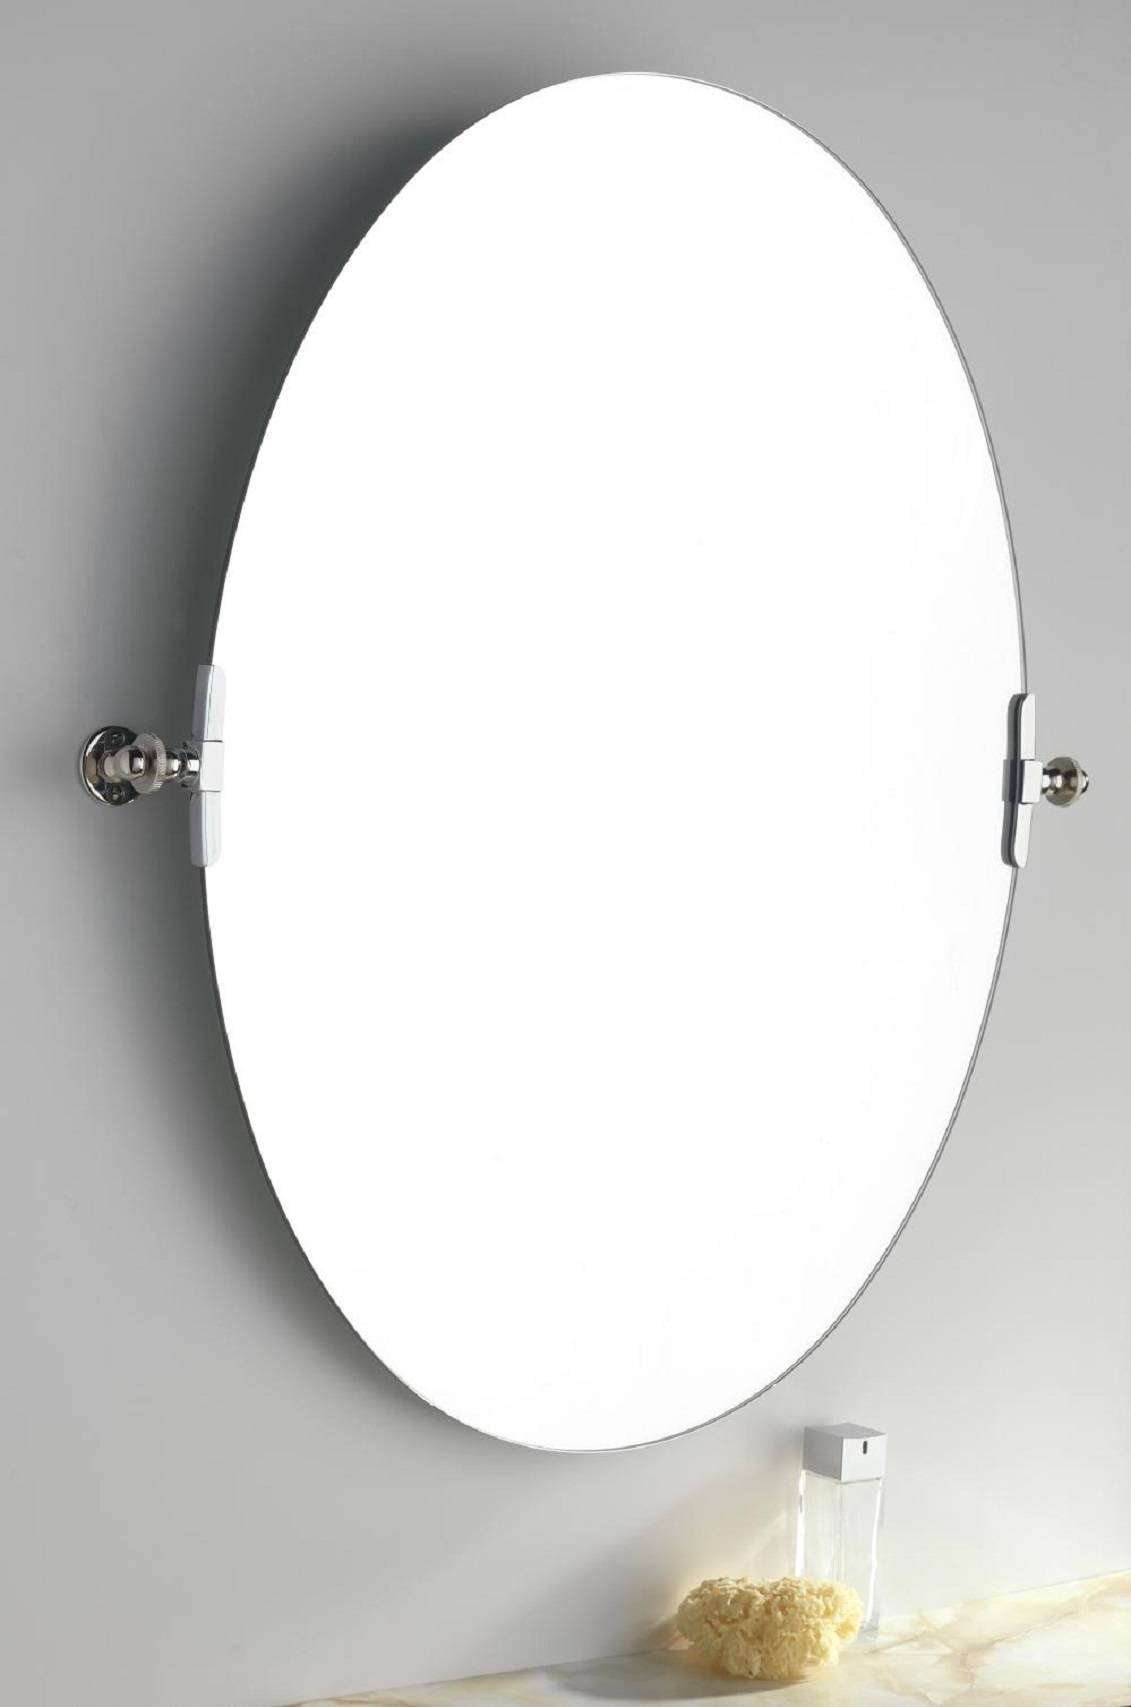 Luxury Oval Bathroom Mirrors X12D #1003 for White Oval Bathroom Mirrors (Image 18 of 25)